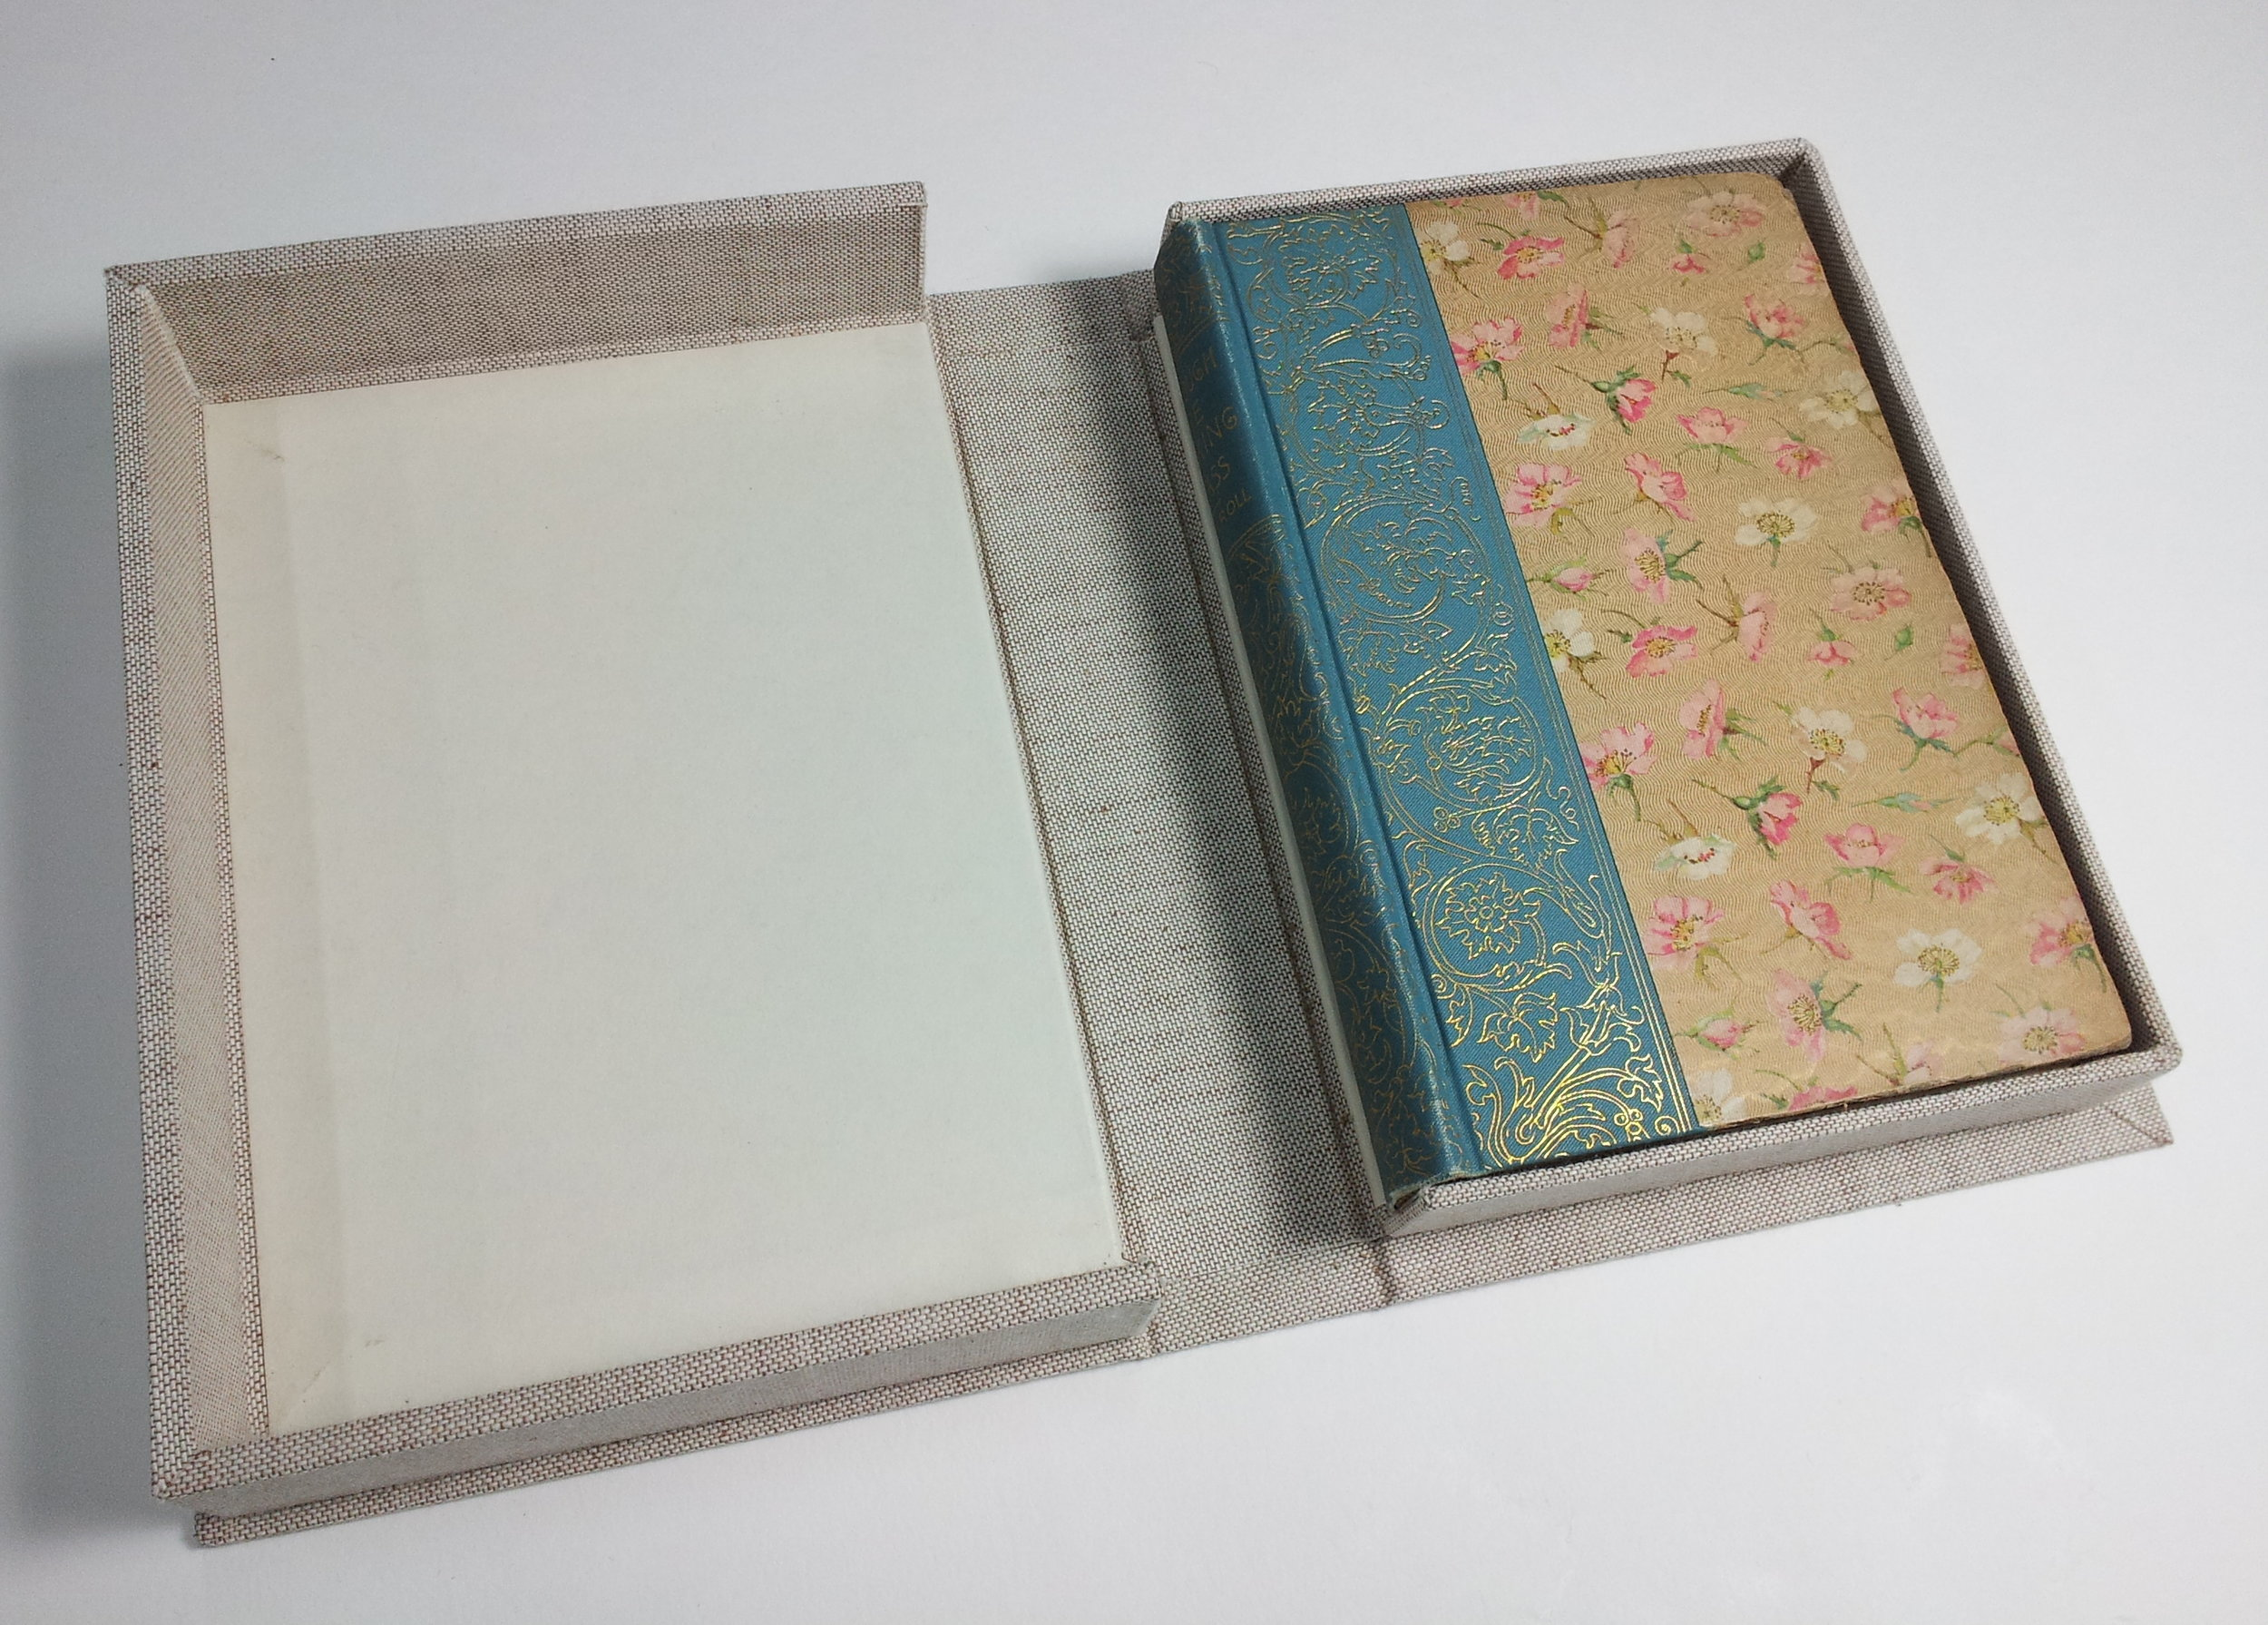 A conservation clamshell with plainer materials protects the book from dust and light.